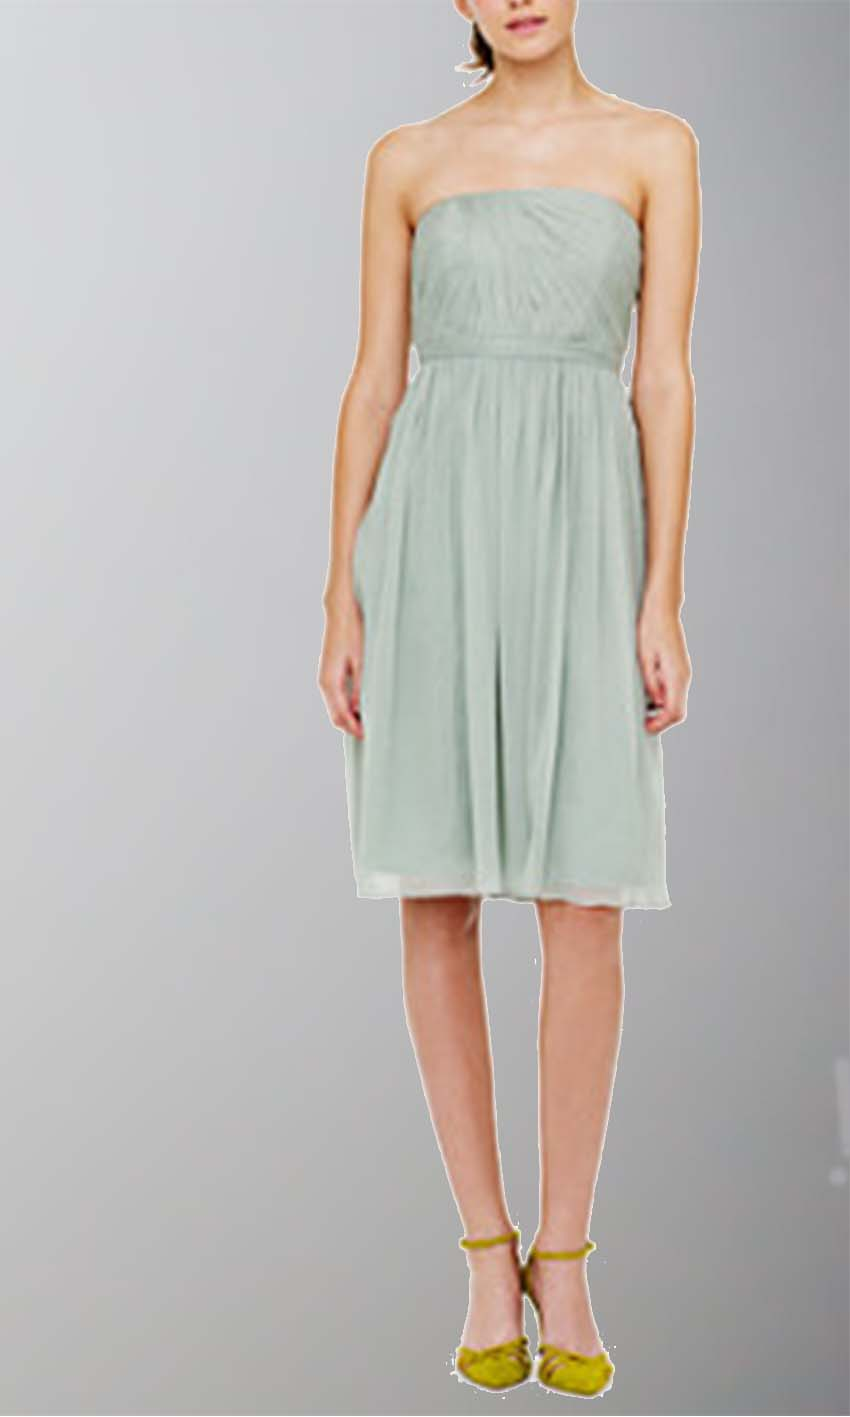 Mint Strapless Sash Short Bridesmaid Dress KSP329 [KSP329] - £87.00 : Cheap Prom Dresses Uk, Bridesmaid Dresses, 2014 Prom & Evening Dresses, Look for cheap elegant prom dresses 2014, cocktail gowns, or dresses for special occasions? kissprom.co.uk offers various bridesmaid dresses, evening dress, free shipping to UK etc.